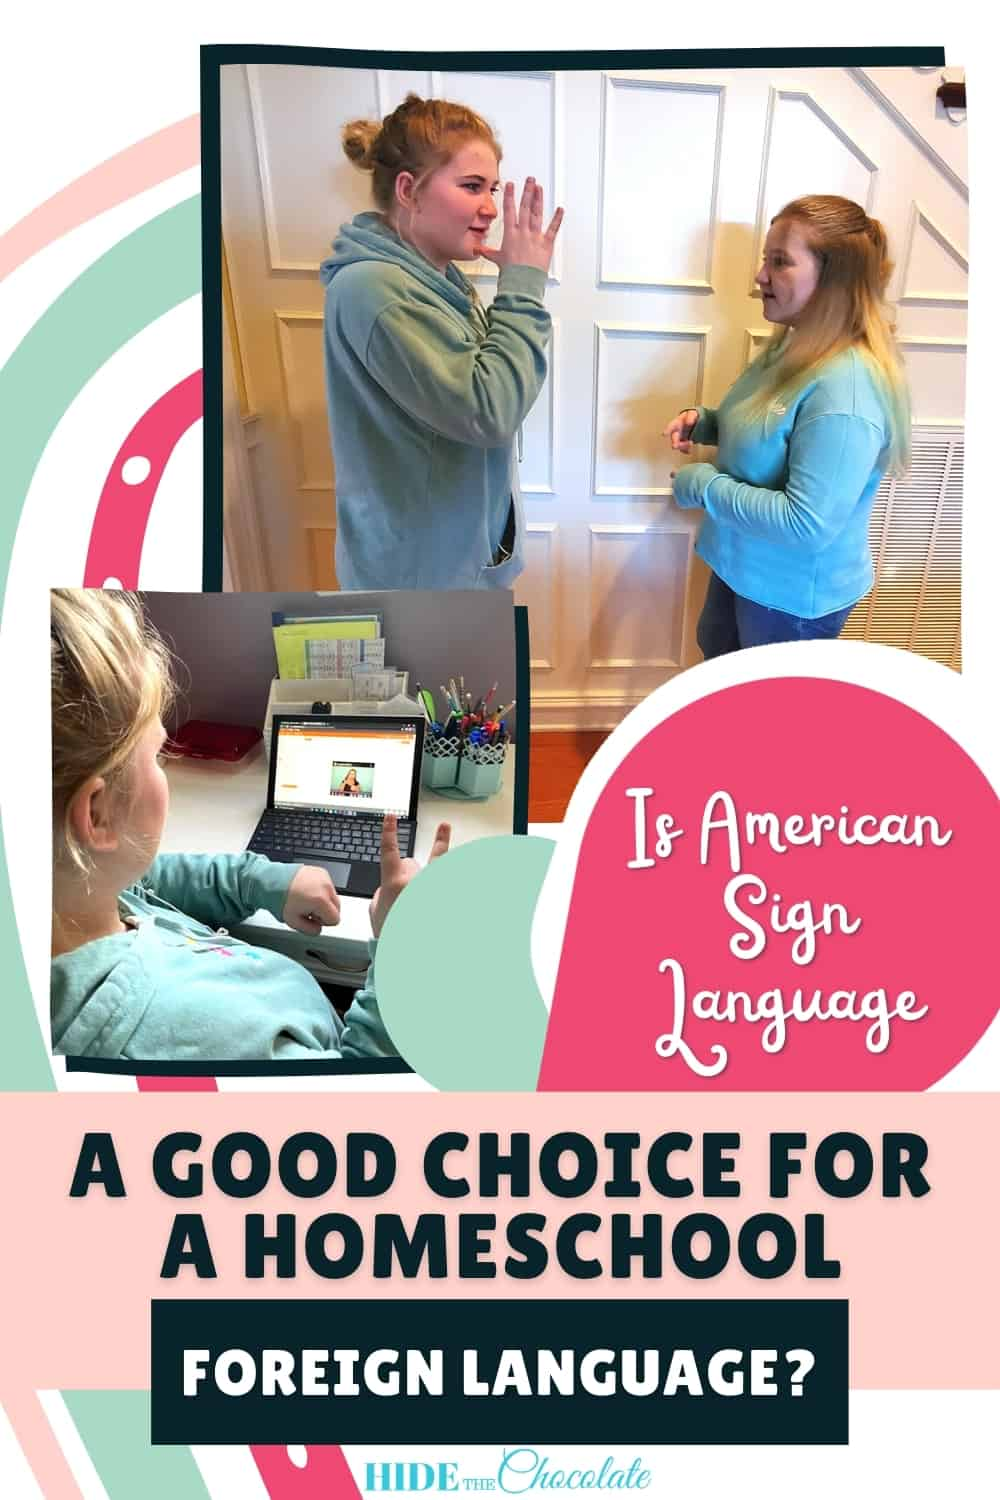 Is American Sign Language A Good Choice For A Homeschool Foreign Language?